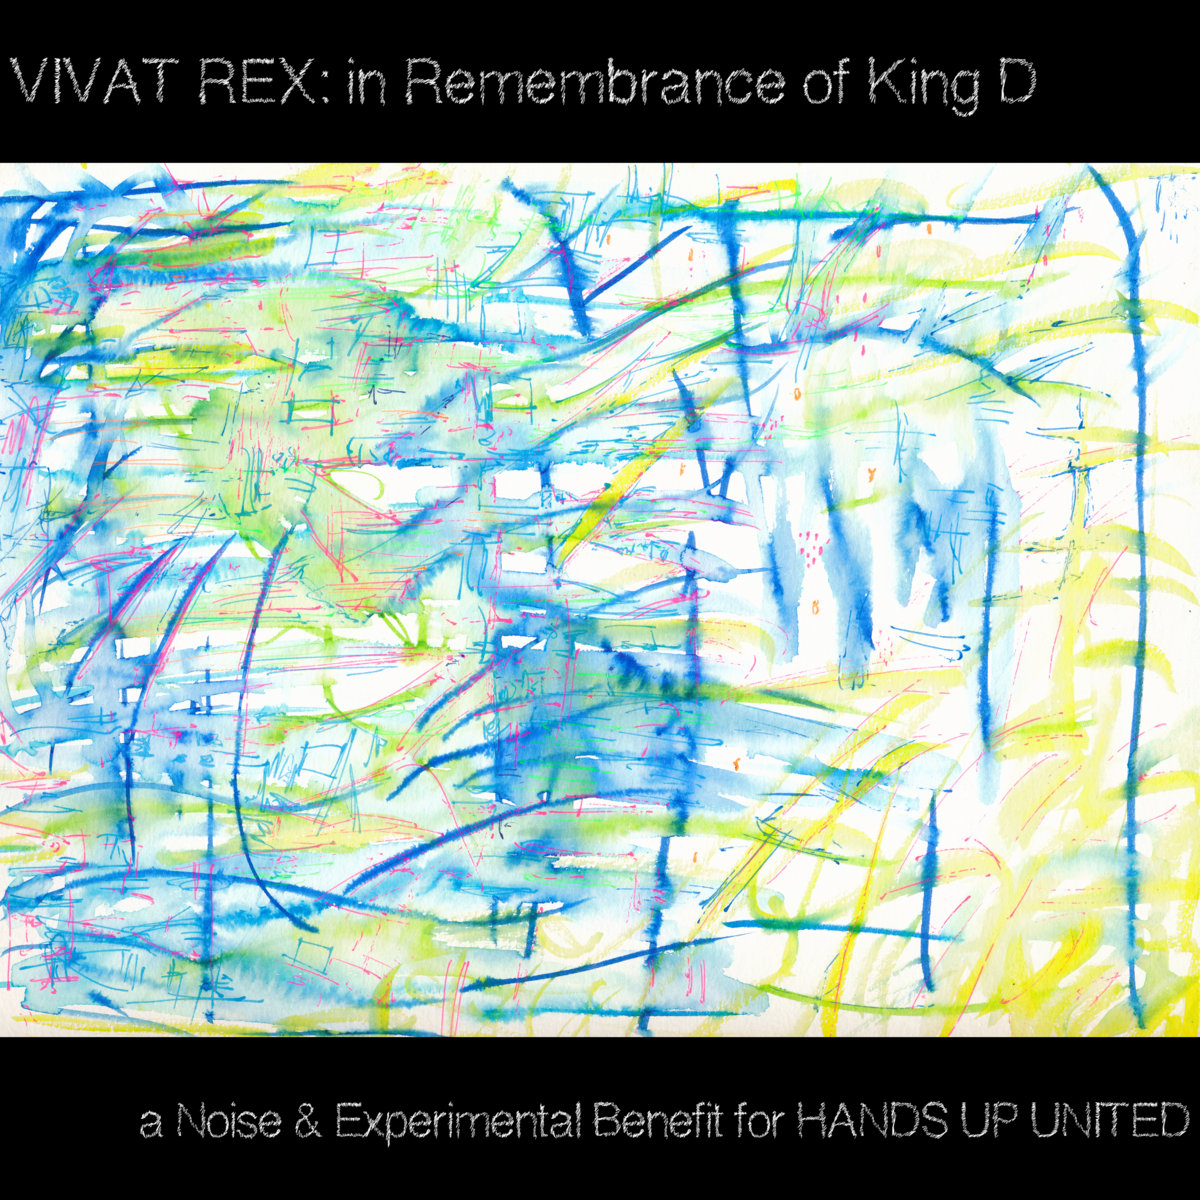 Vivat, the King 48